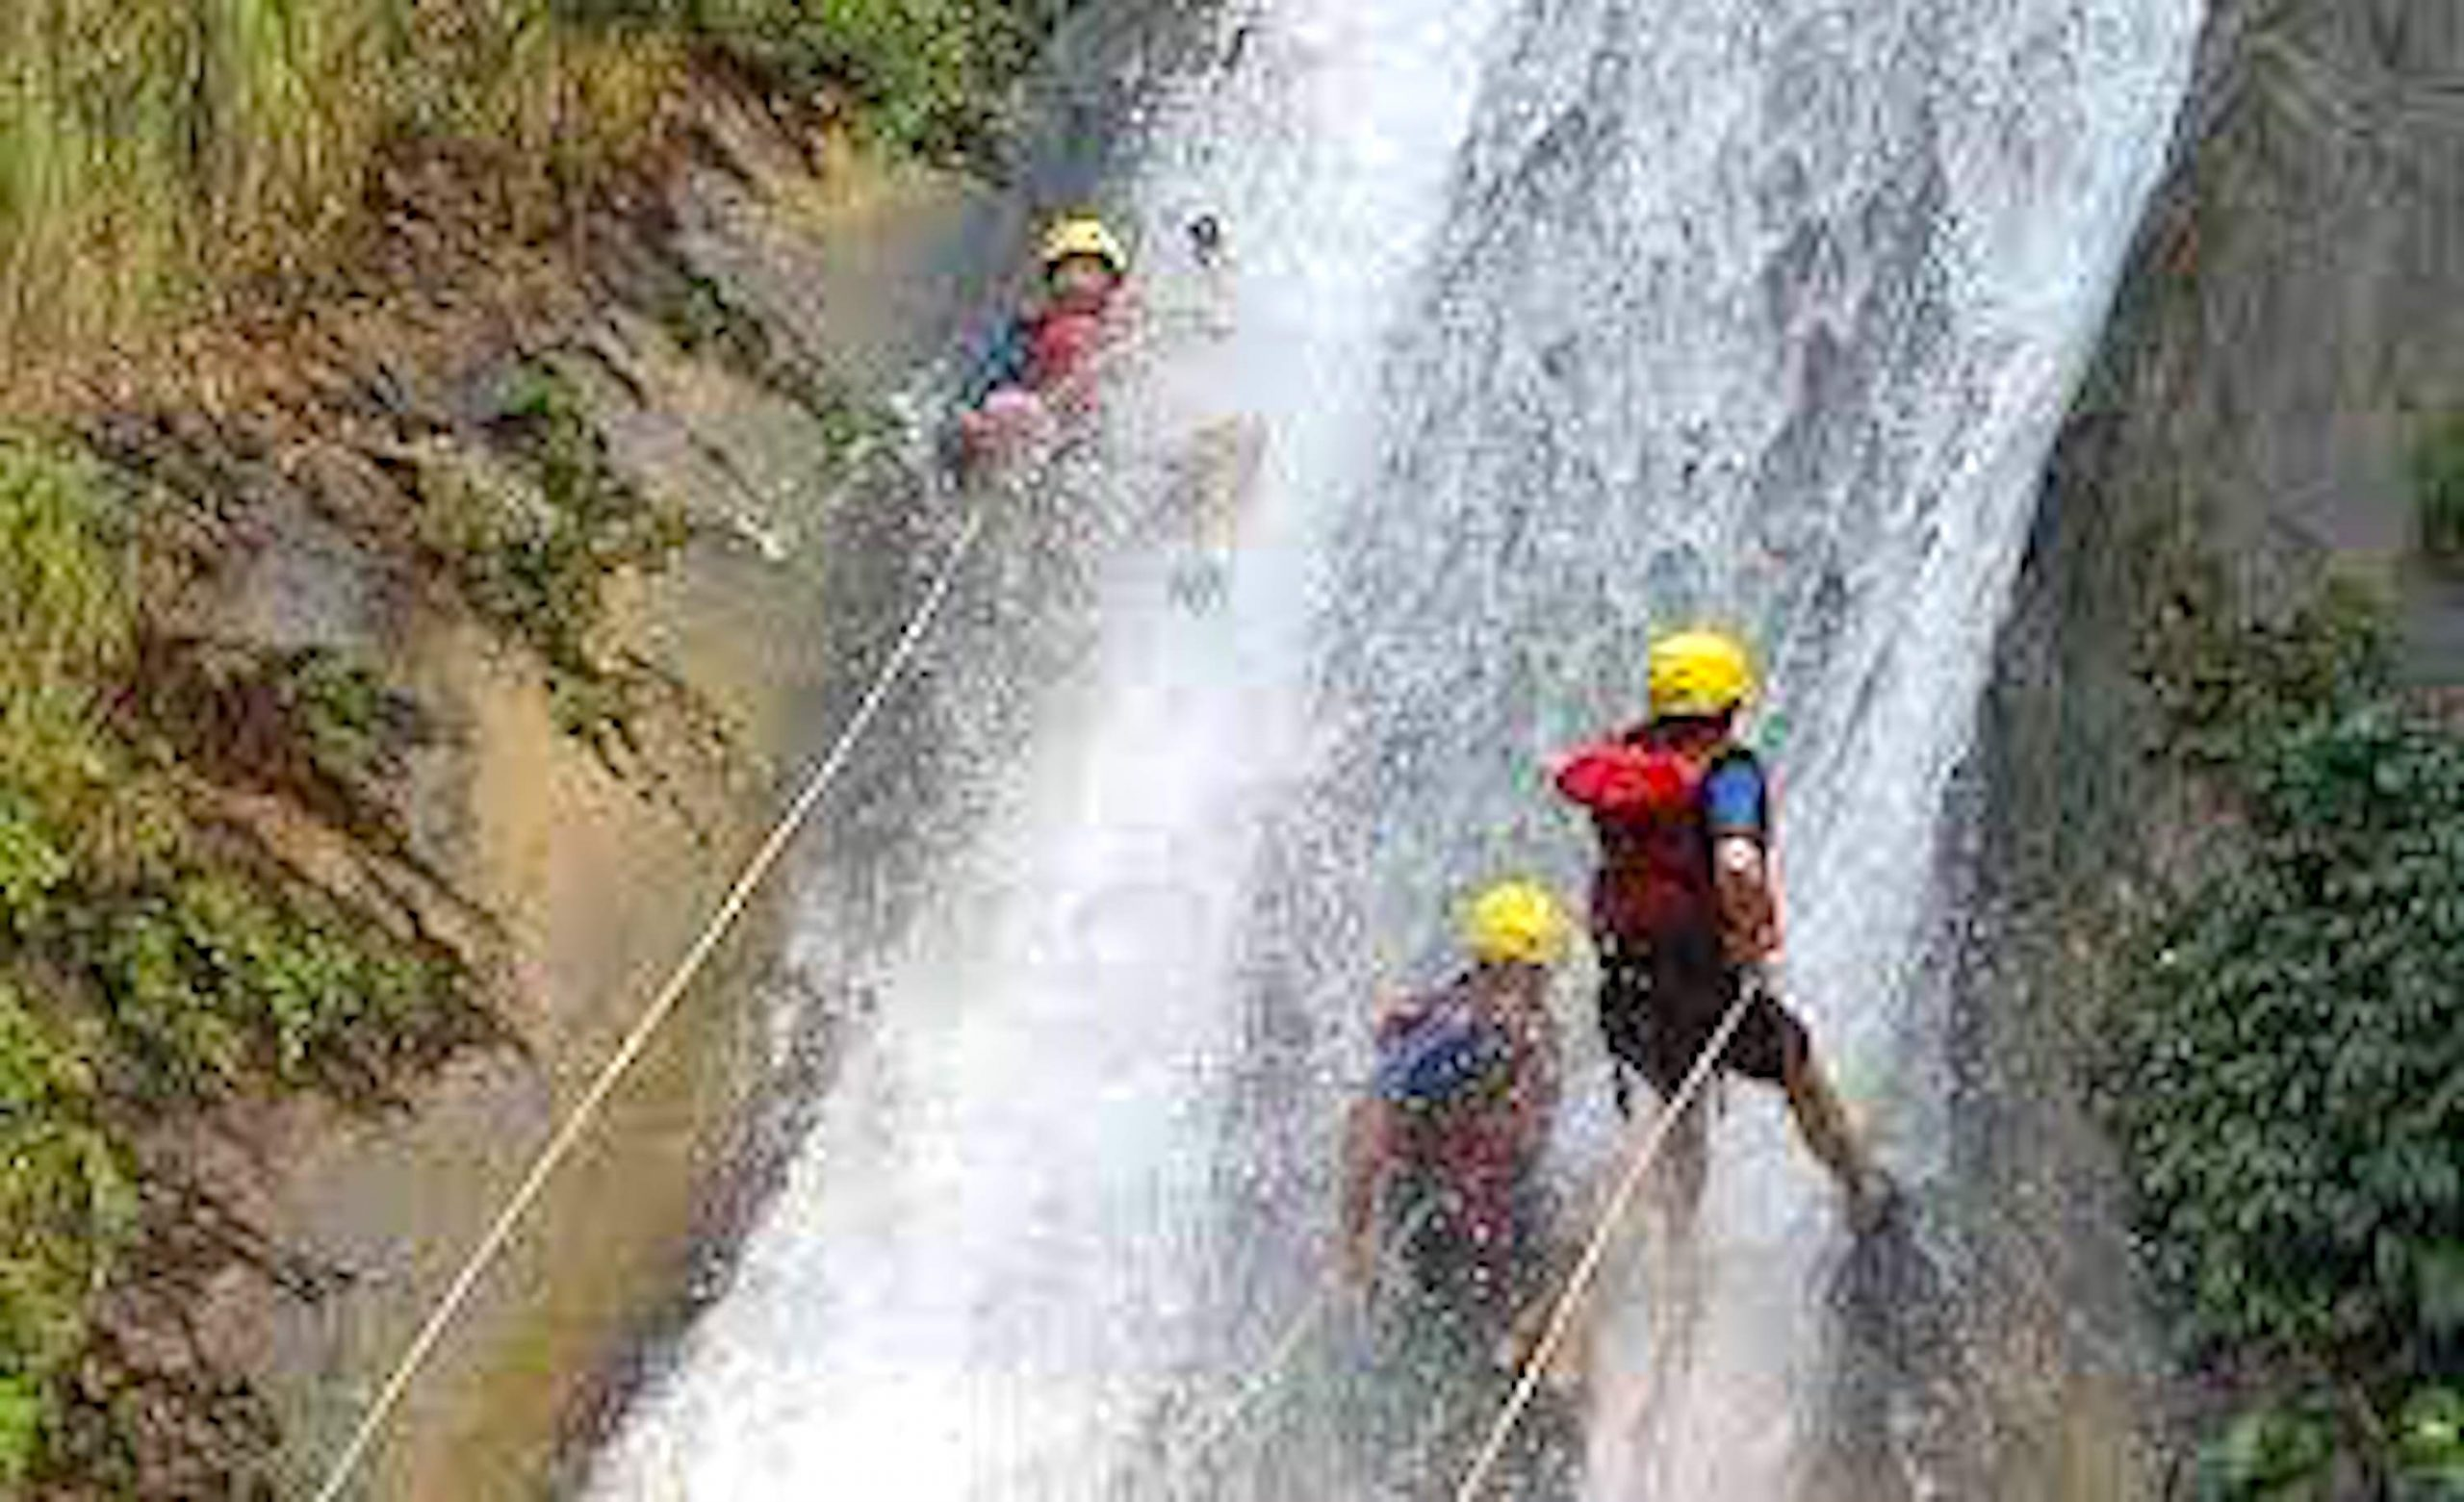 Canyoning Sport In Nepal – Location, Timing, Cost, & Precautions